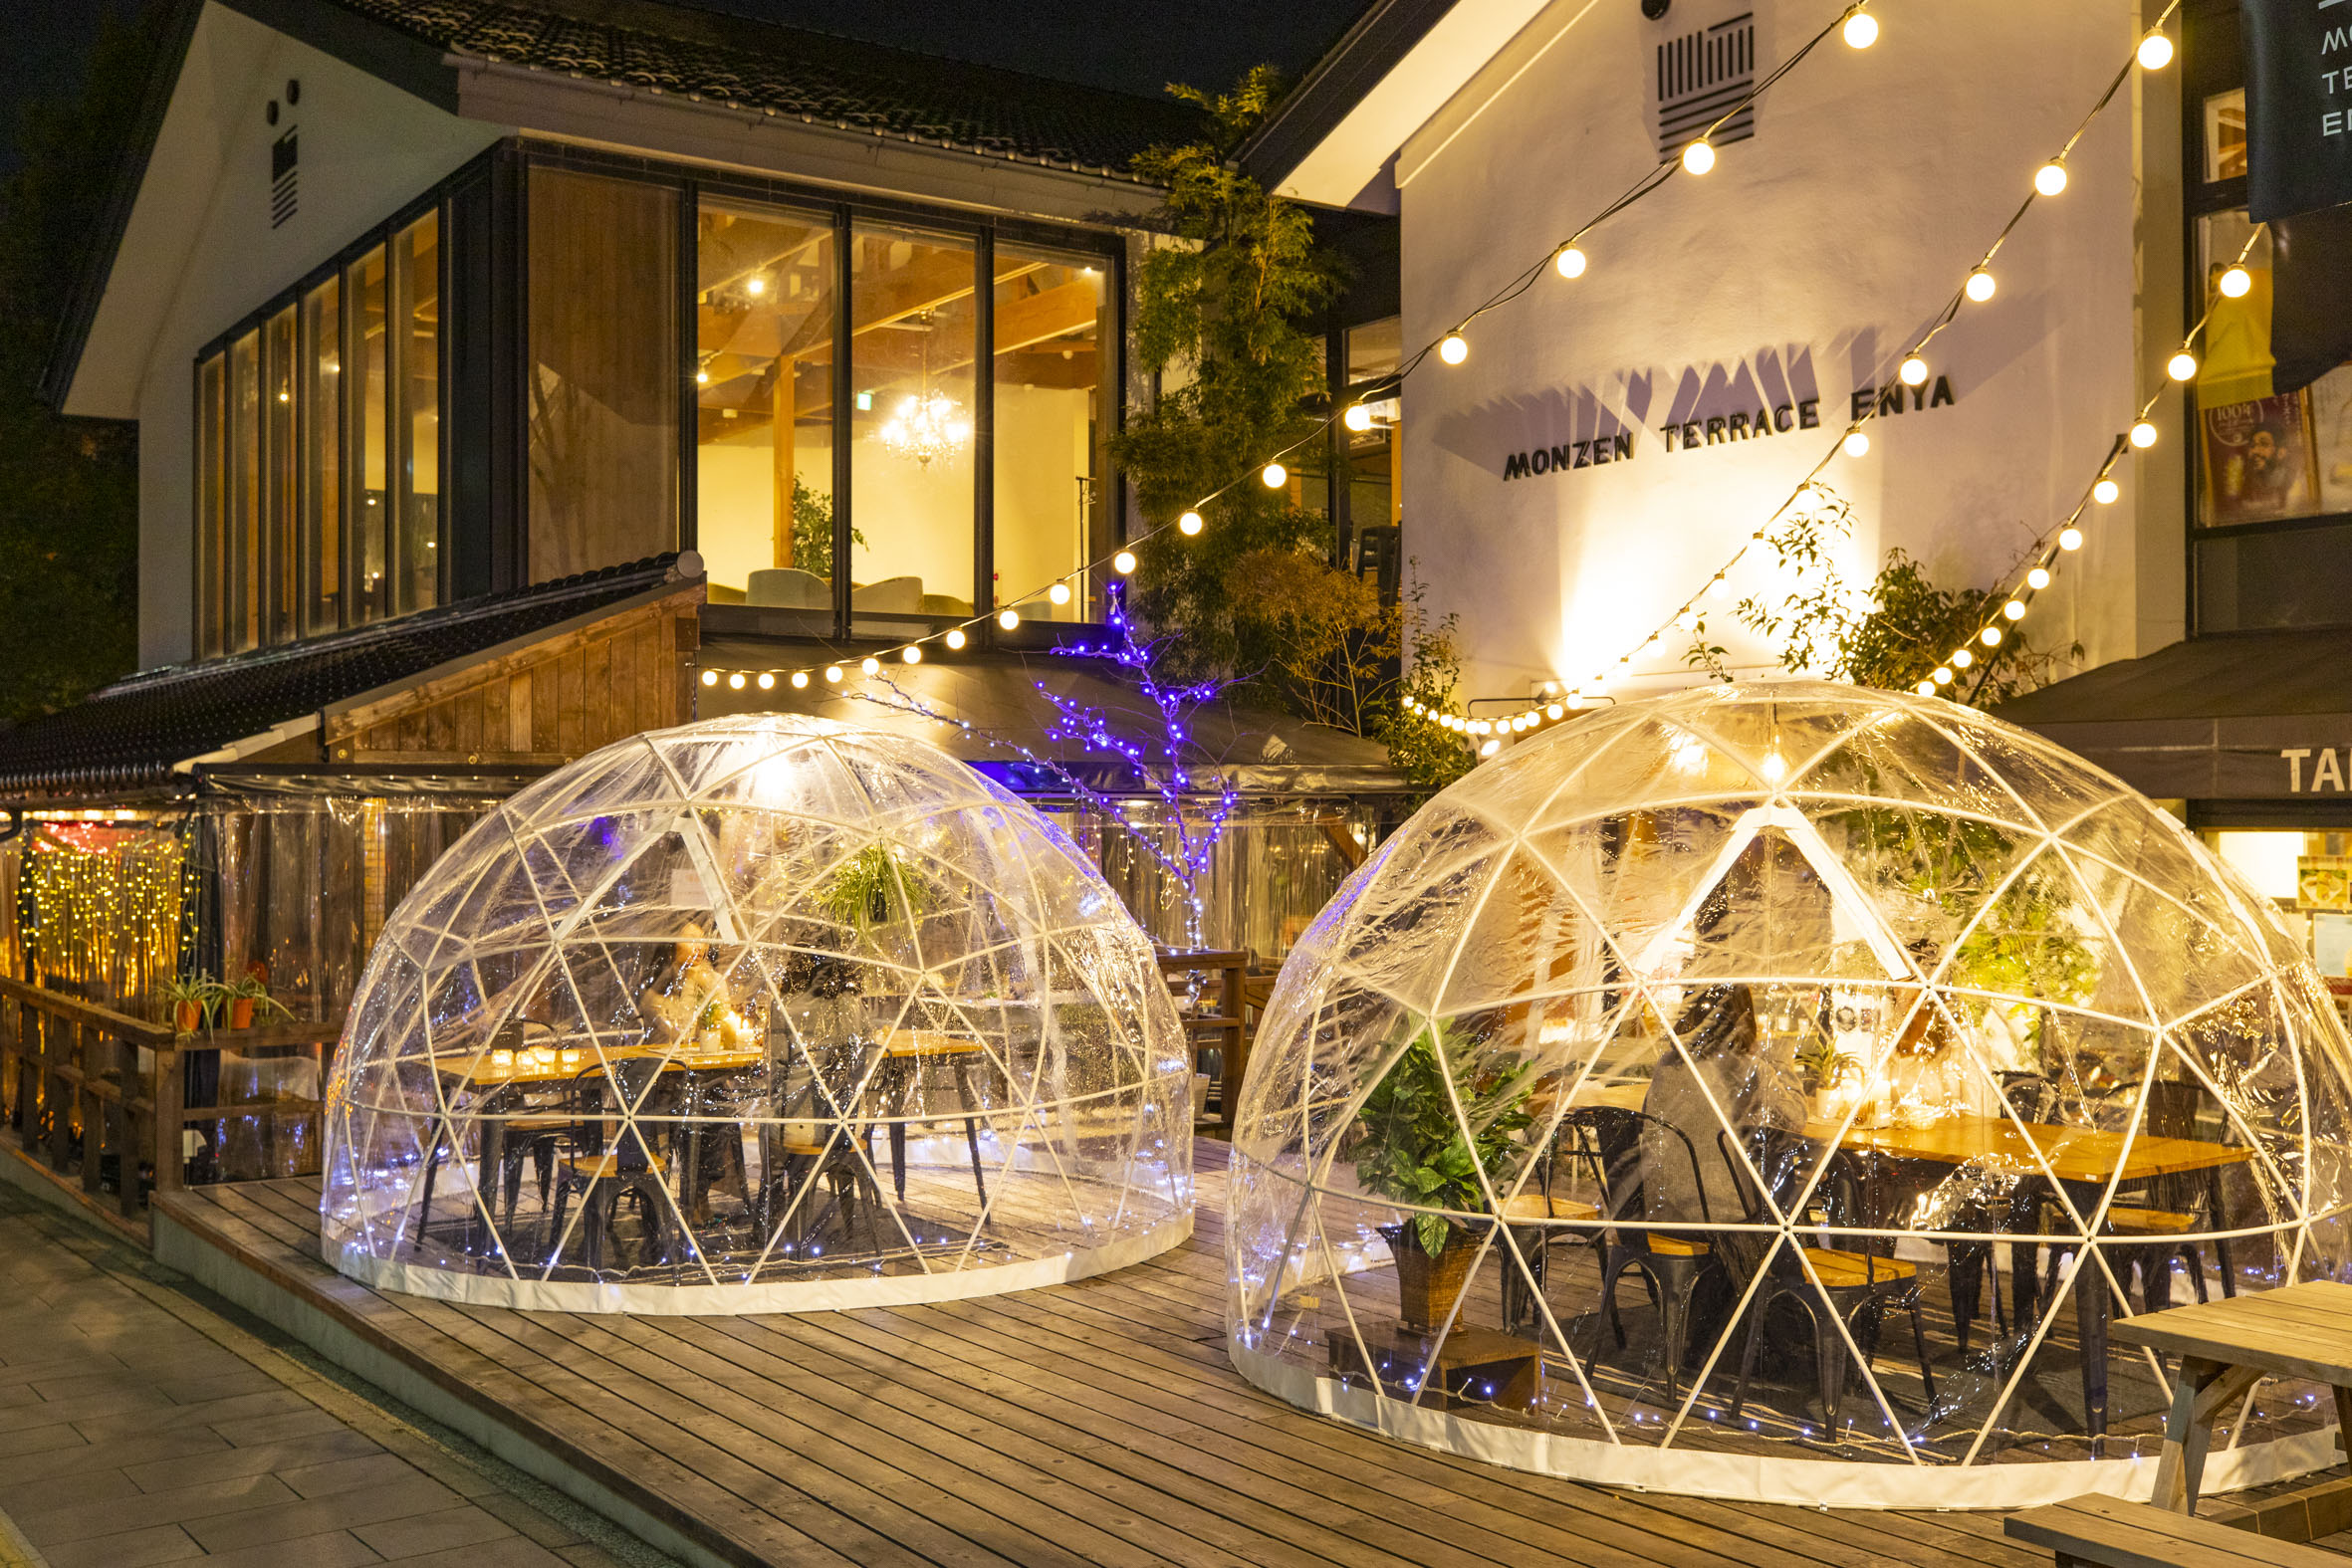 Stay warm in winter with Enya's Winter Illumination Dinner Course